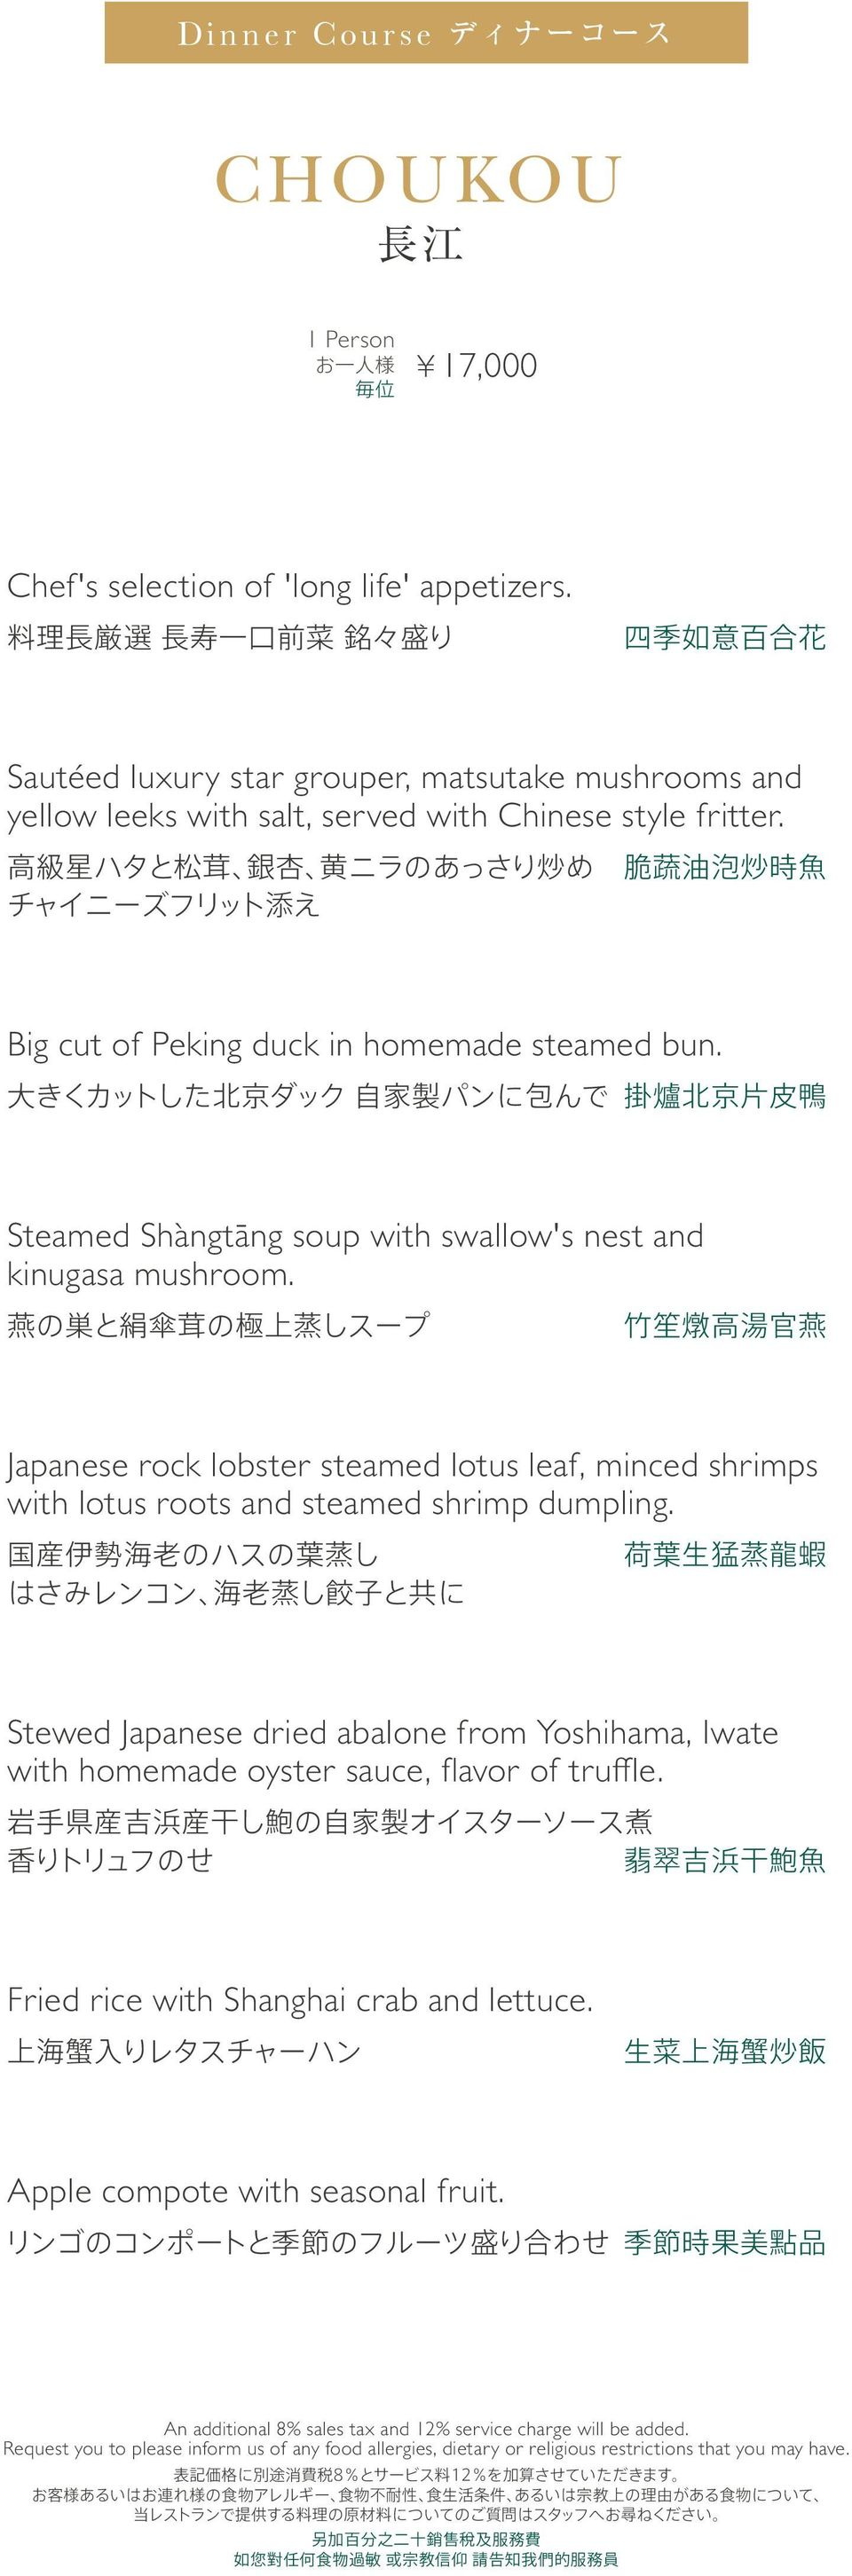 Big cut of Peking duck in homemade steamed bun. Steamed Shàngtāng soup with swallow's nest and kinugasa mushroom.